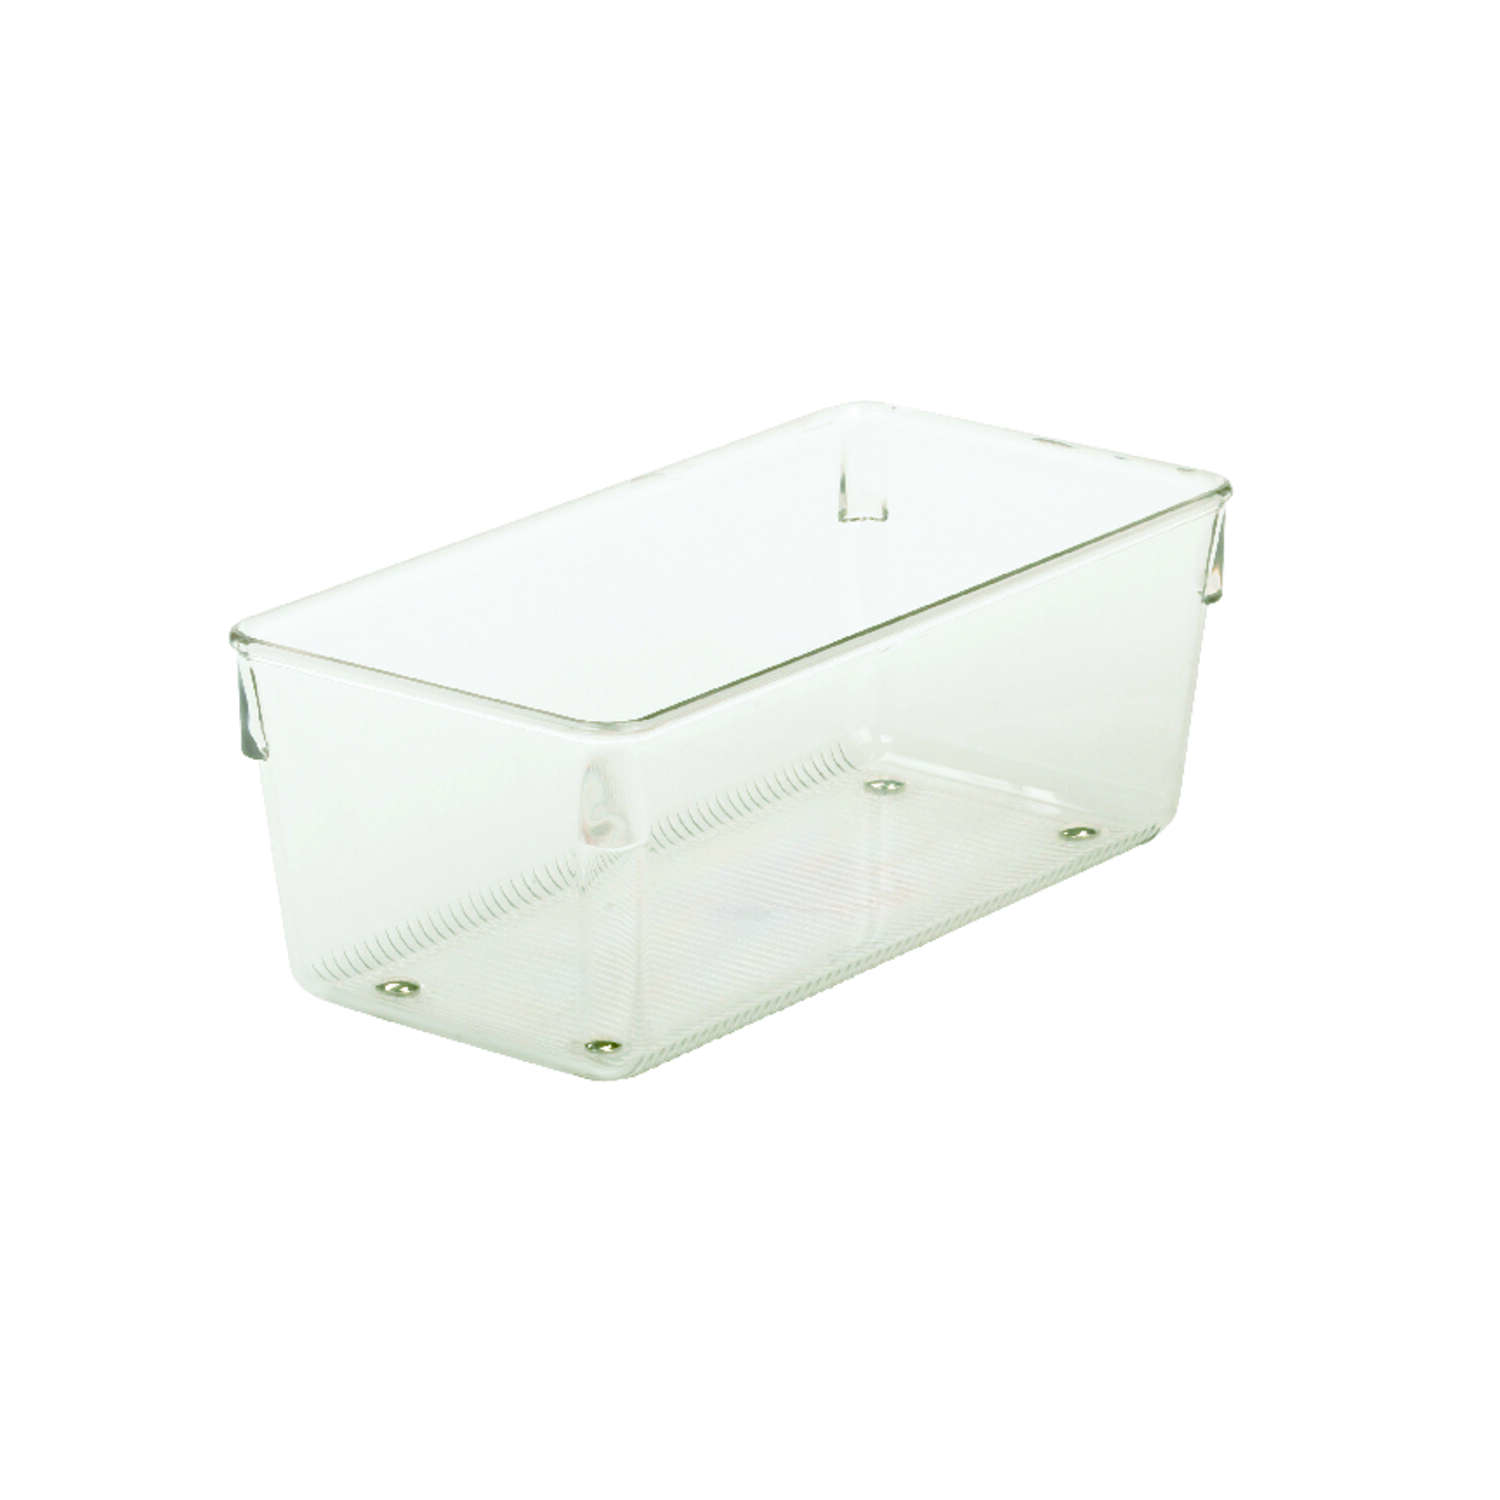 InterDesign  Linus  3 in. H x 4 in. W x 8 in. L Clear  Plastic  Drawer Organizer